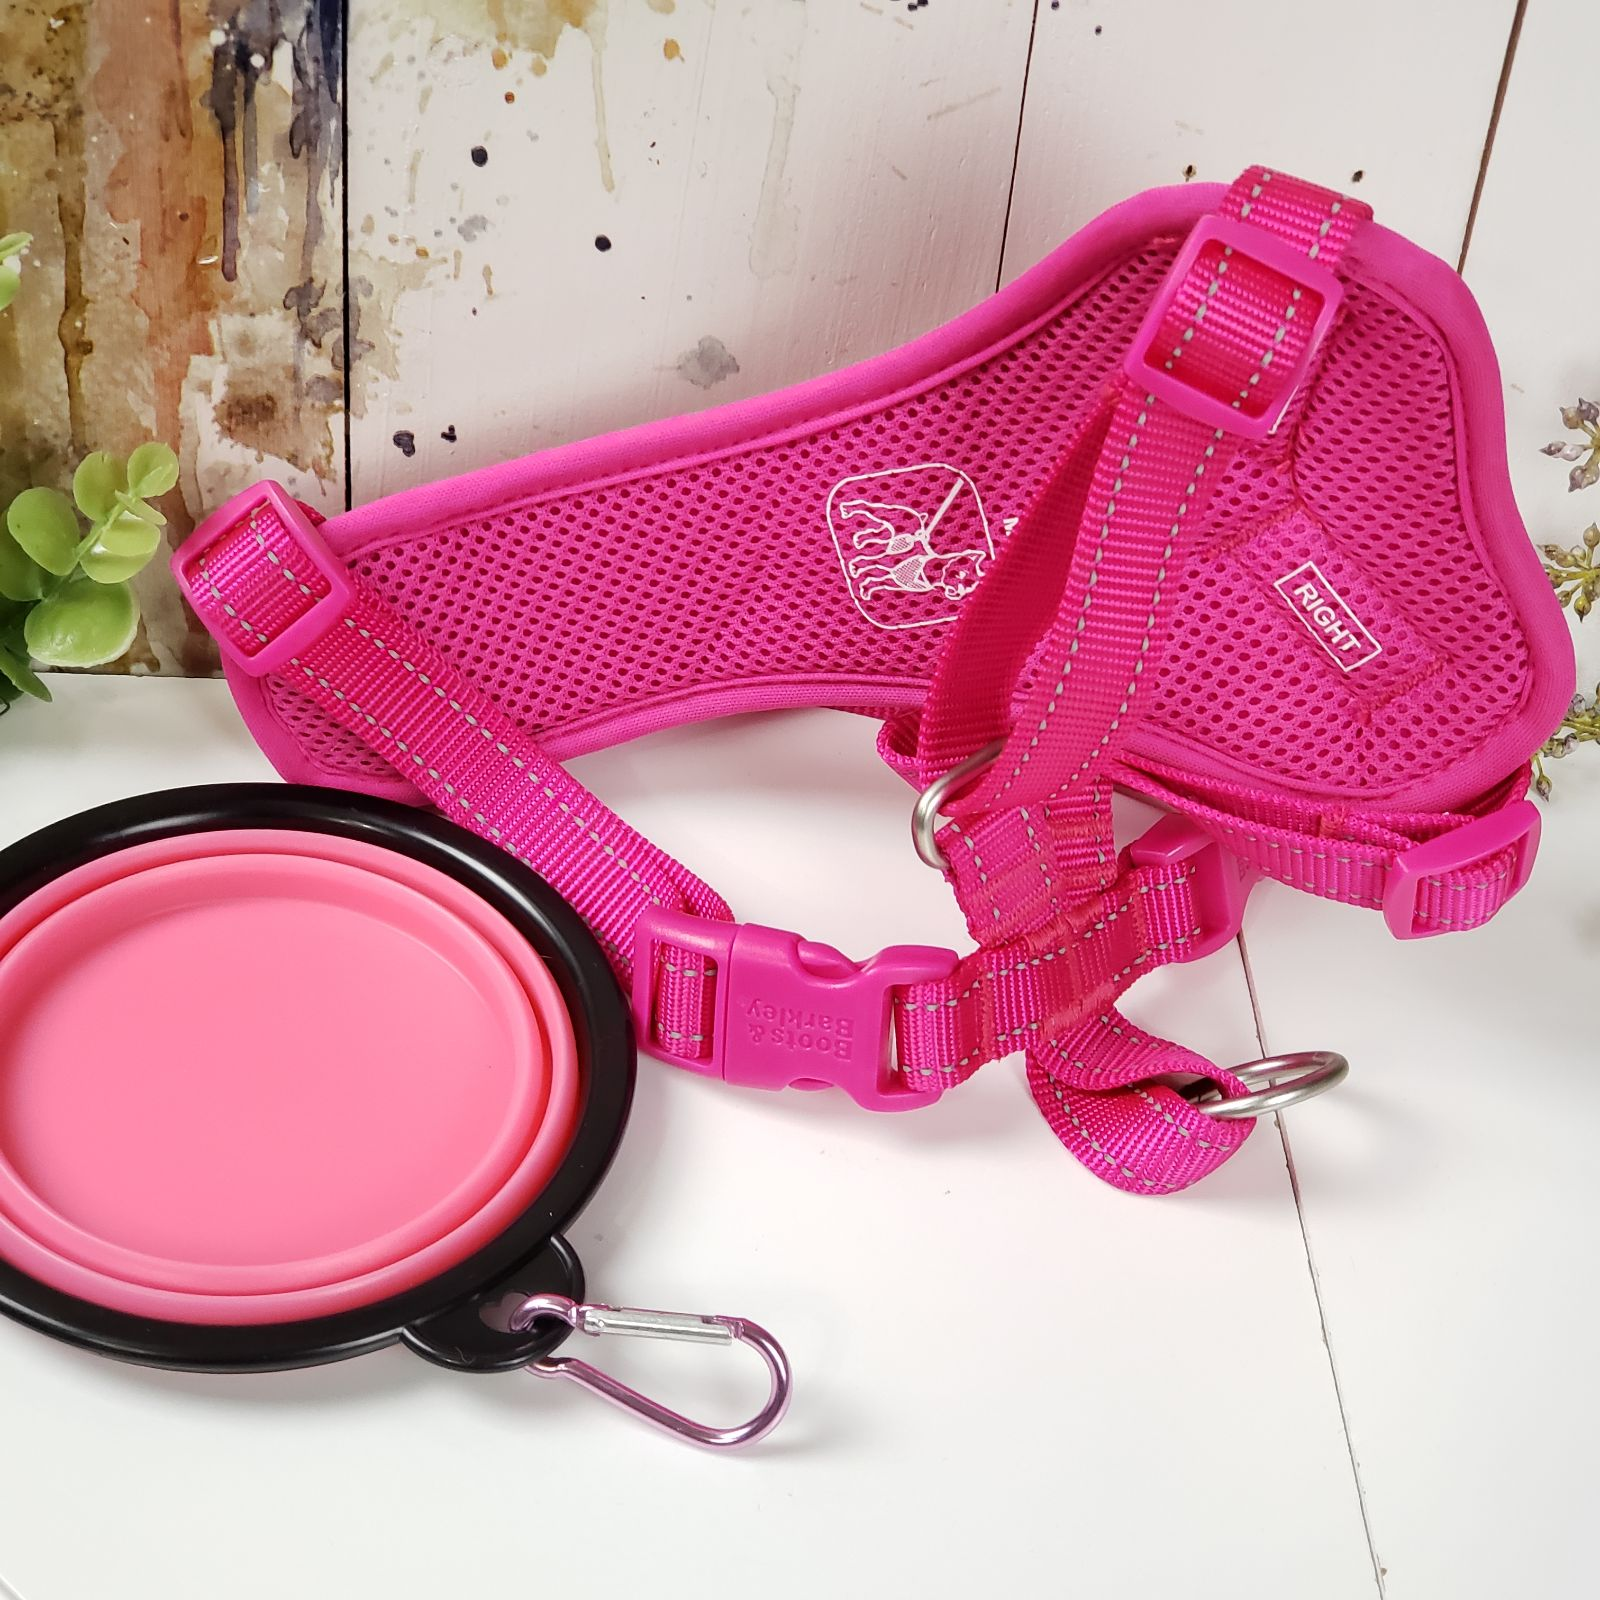 Pink dog harness and silicone bowl